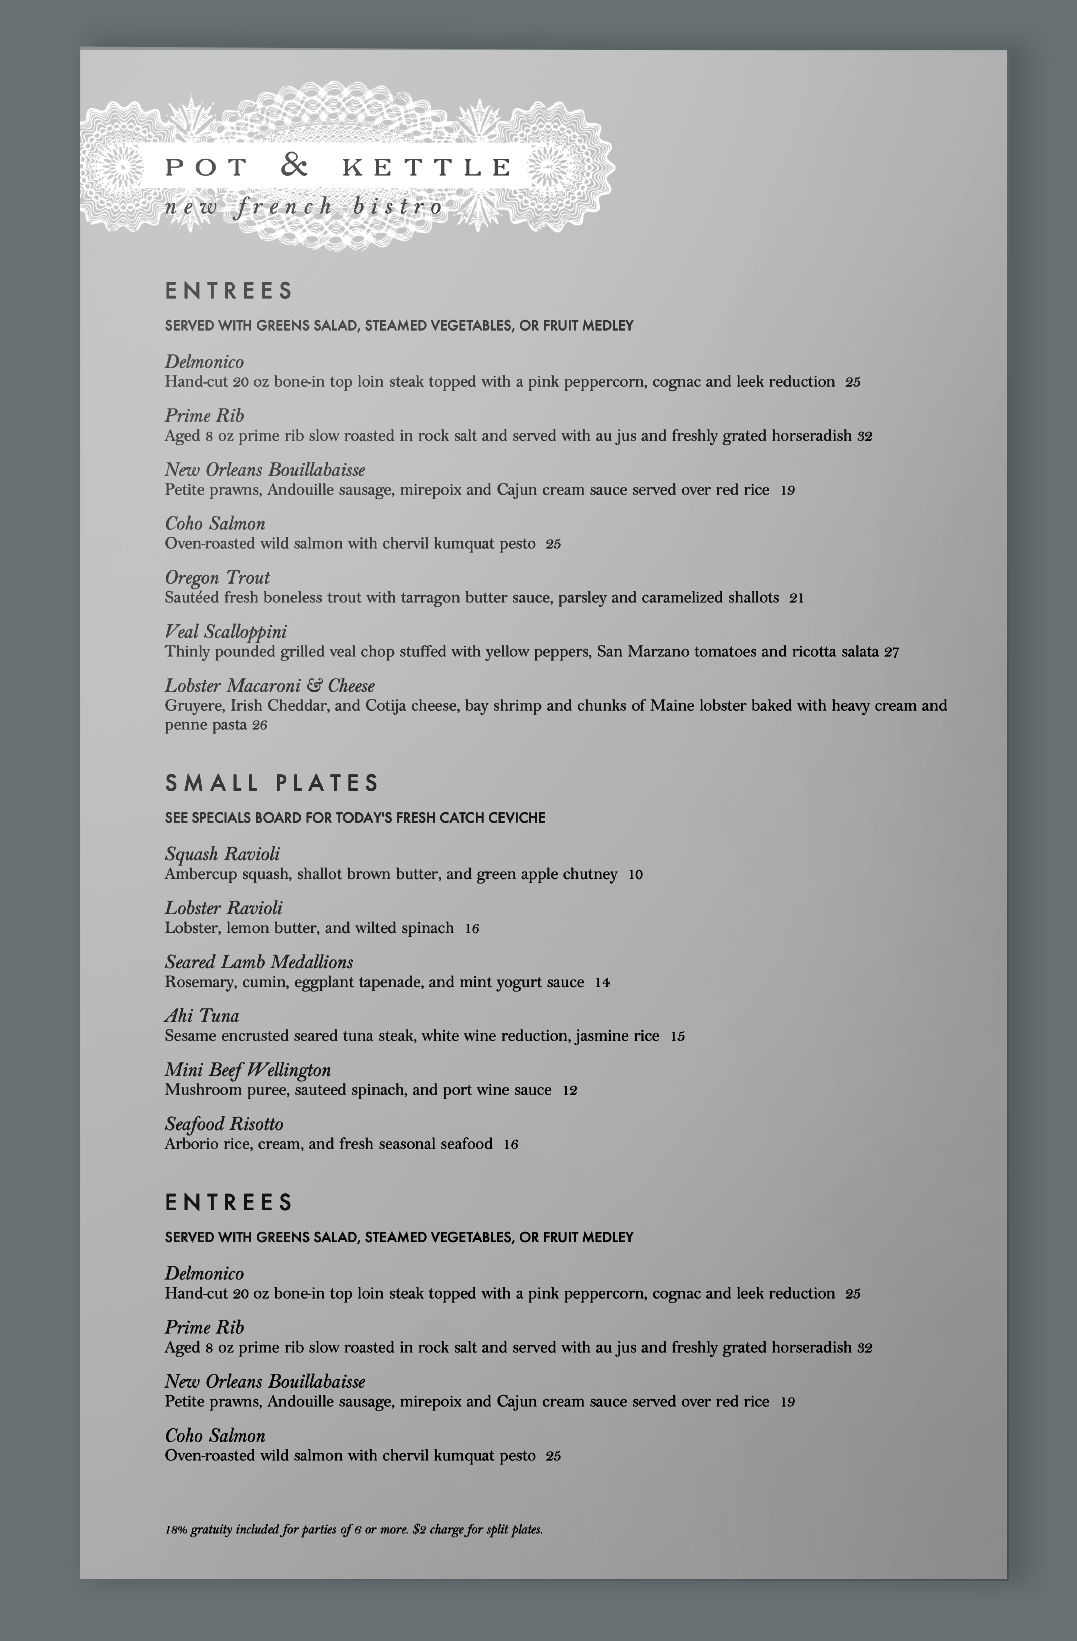 a french dinner menu template with a warm gray background and white